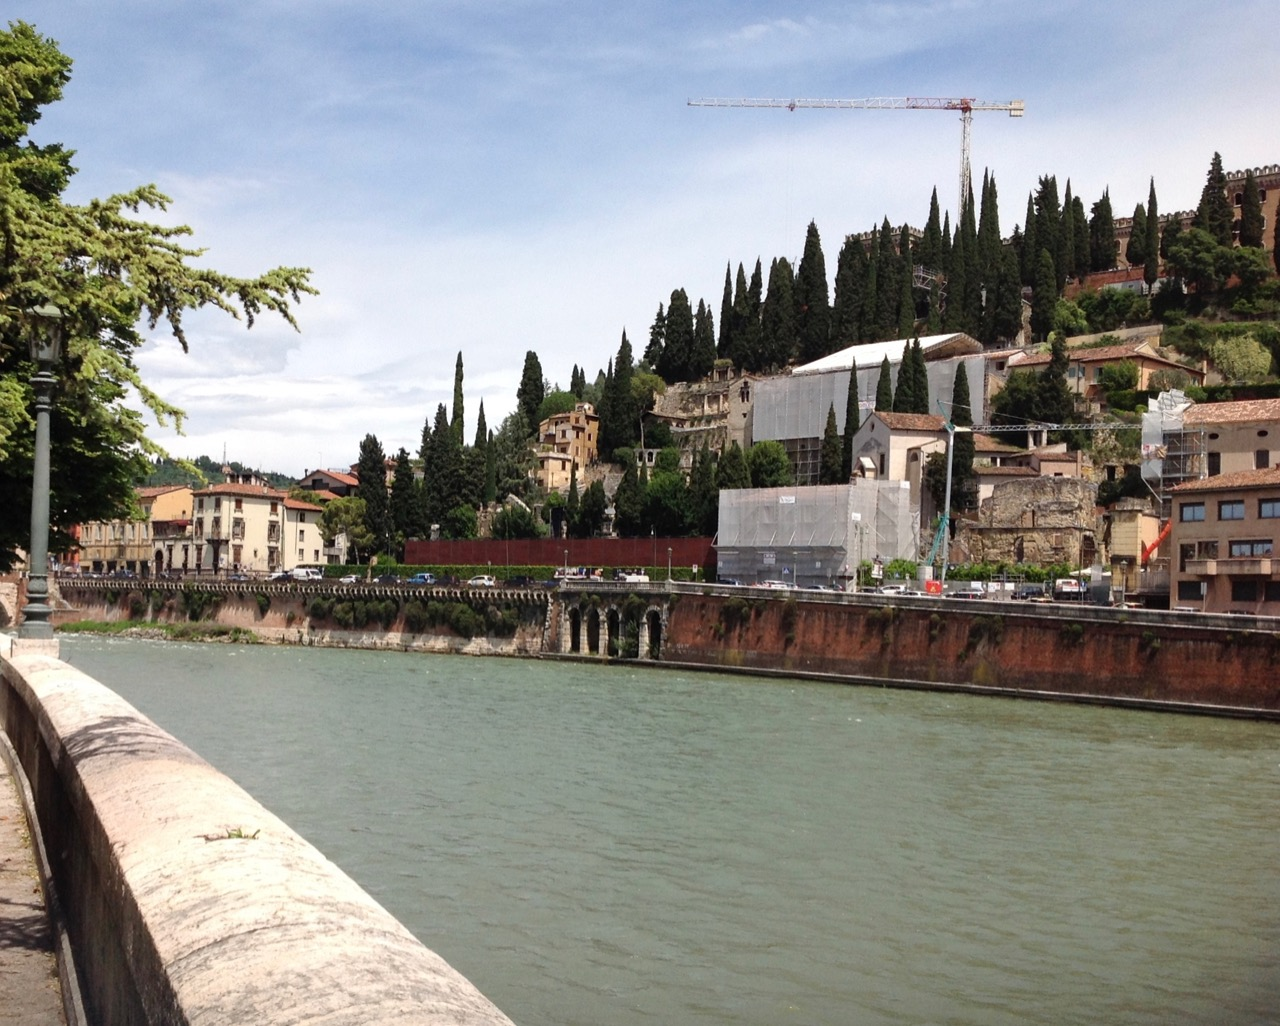 Another Adige view